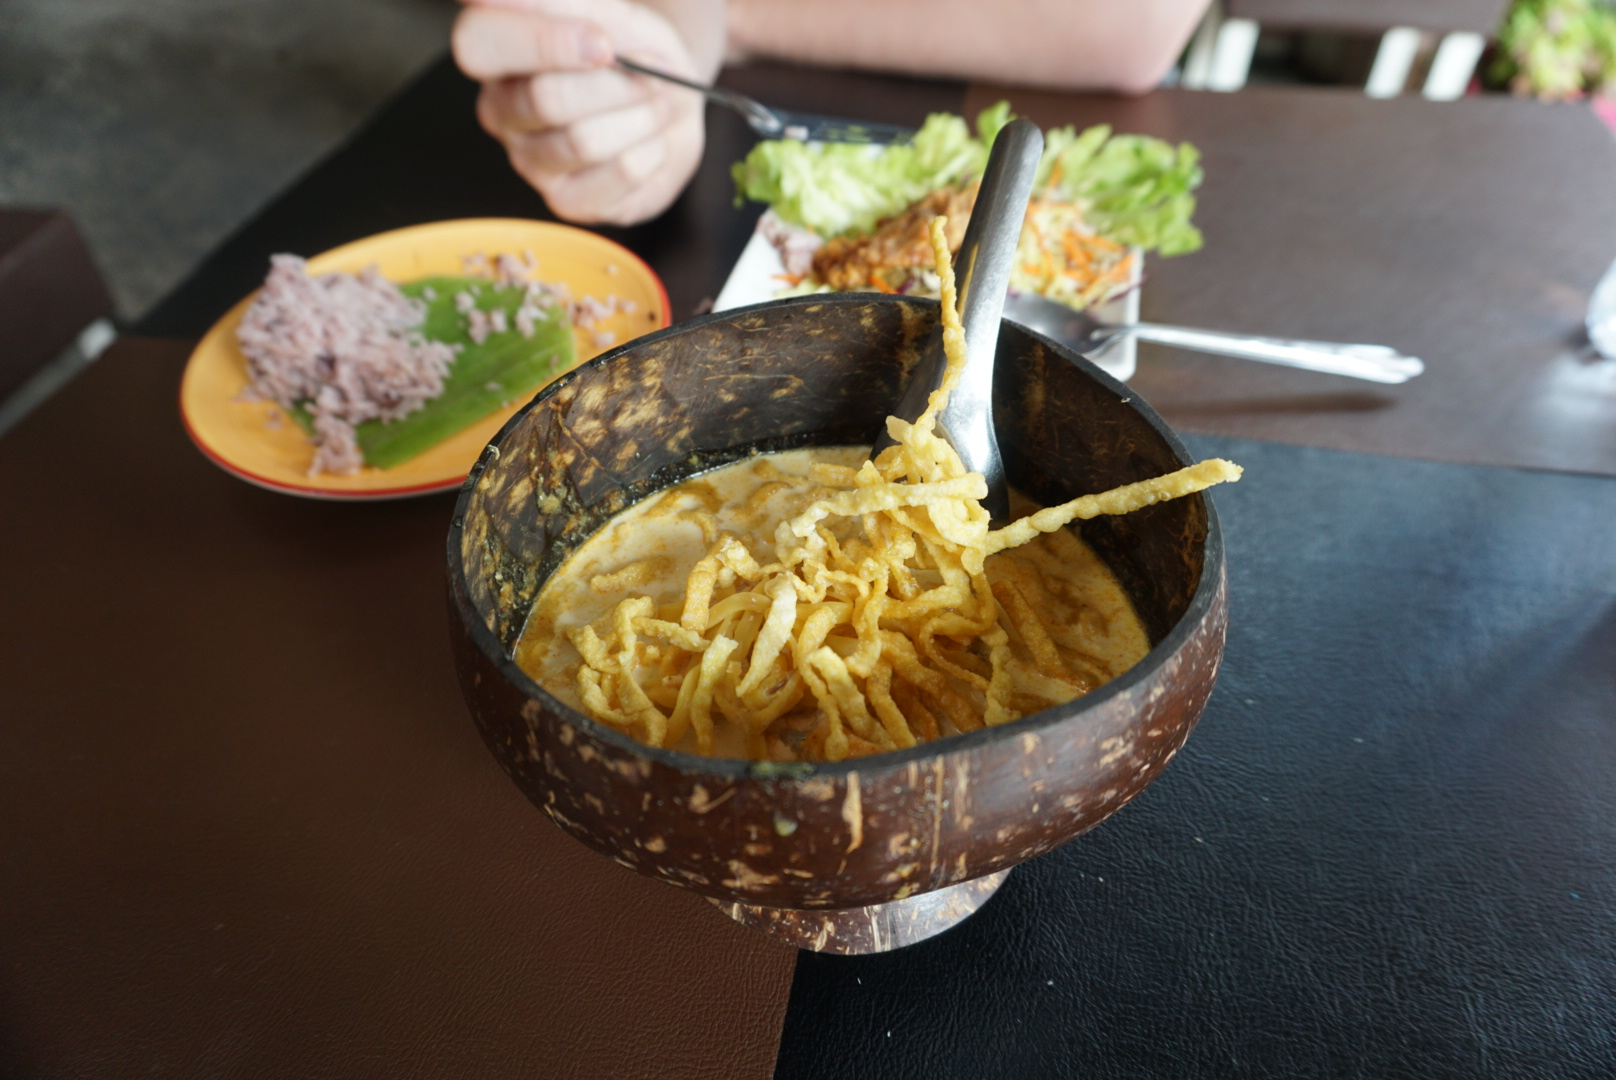 Khao Soi and stir fried chicken in garlic with rice at the Coconut Shell